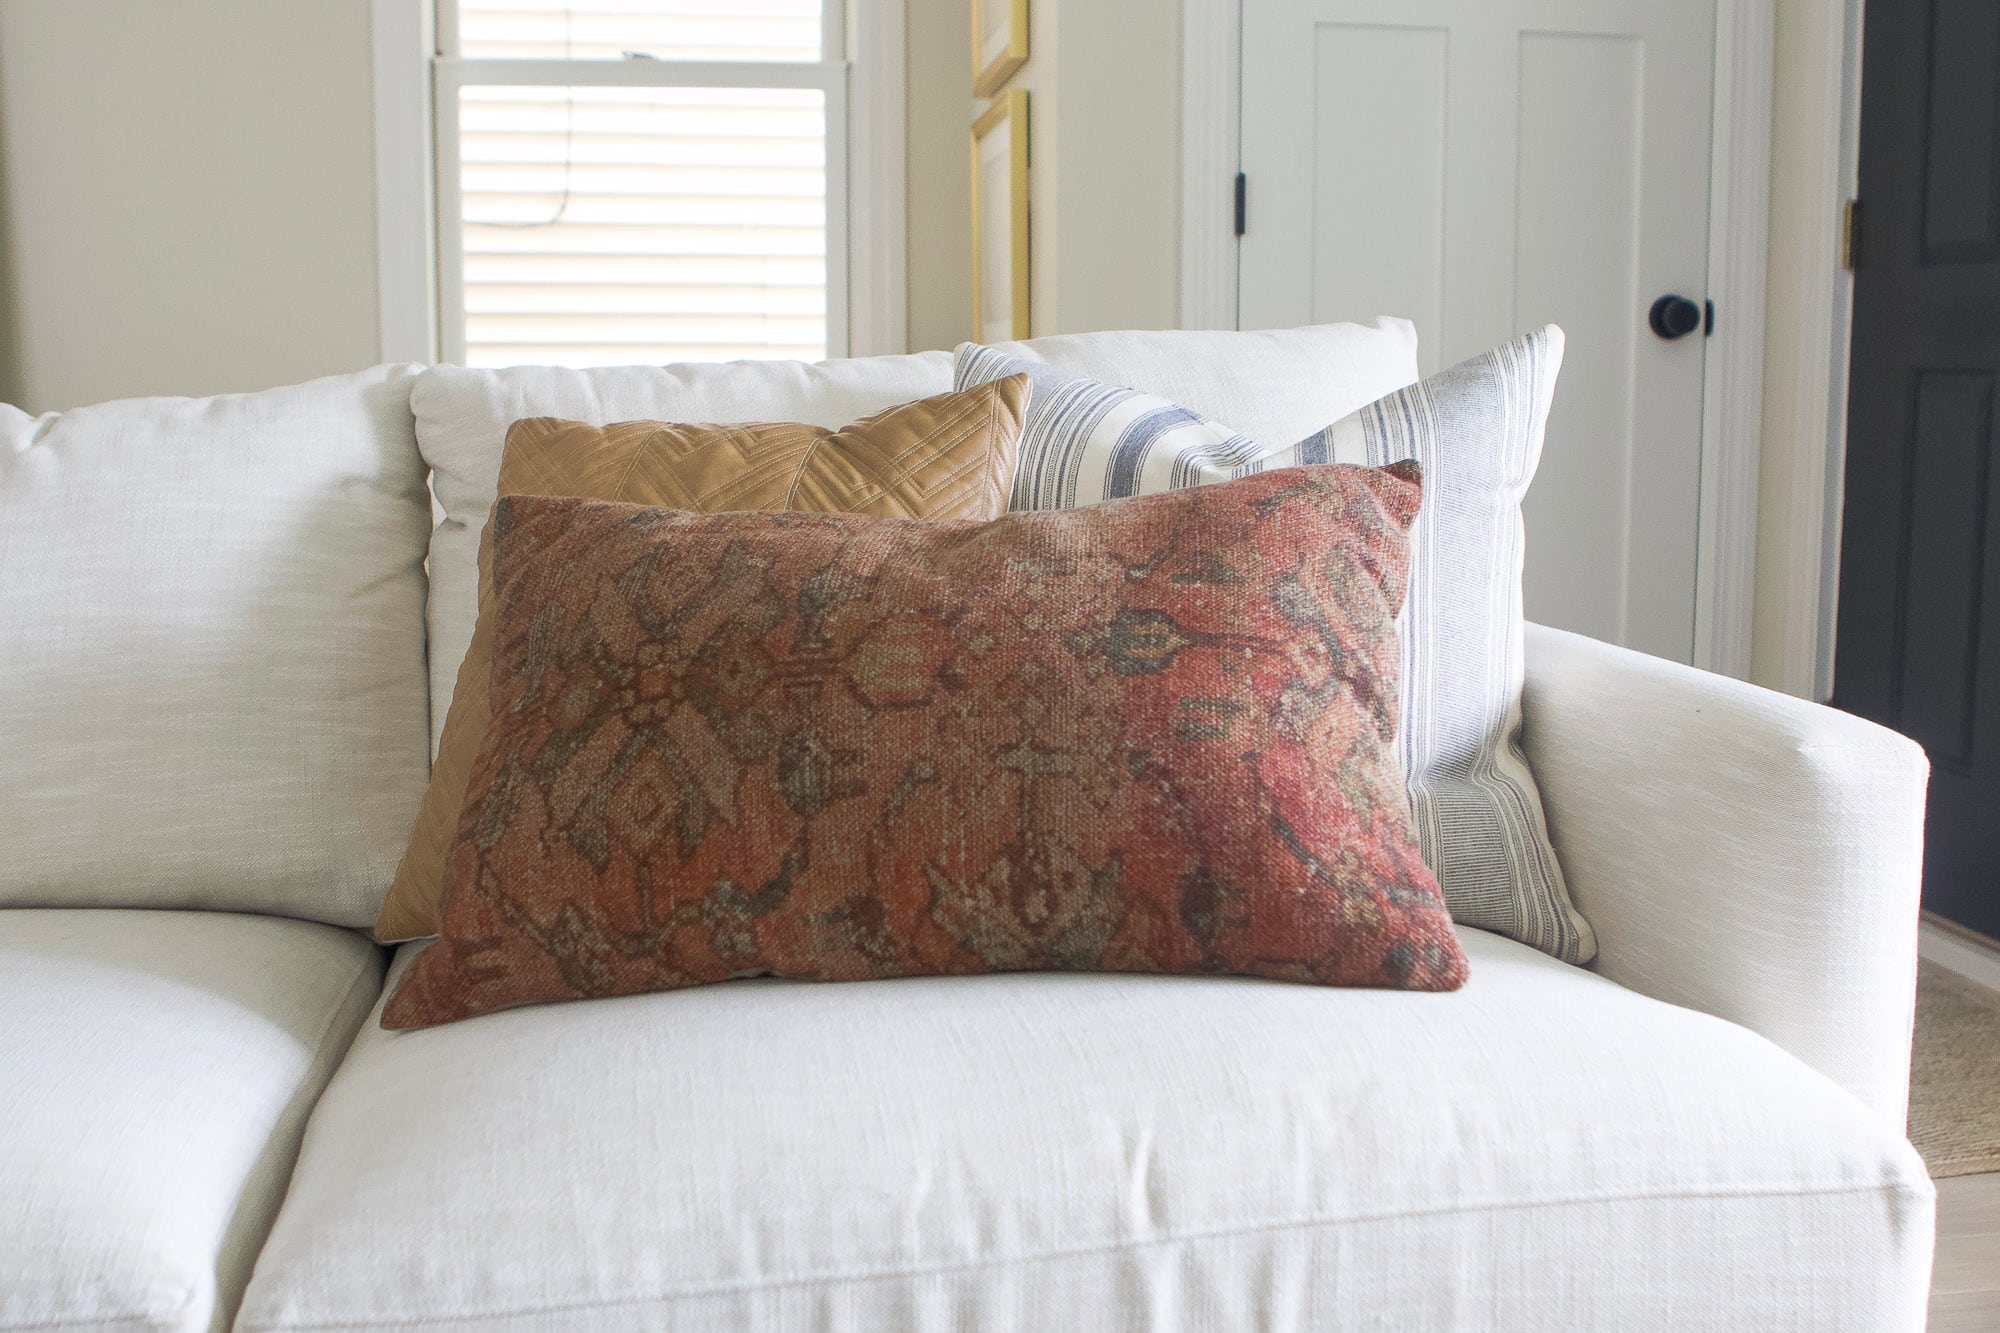 Adding colorful pillows to a neutral couch